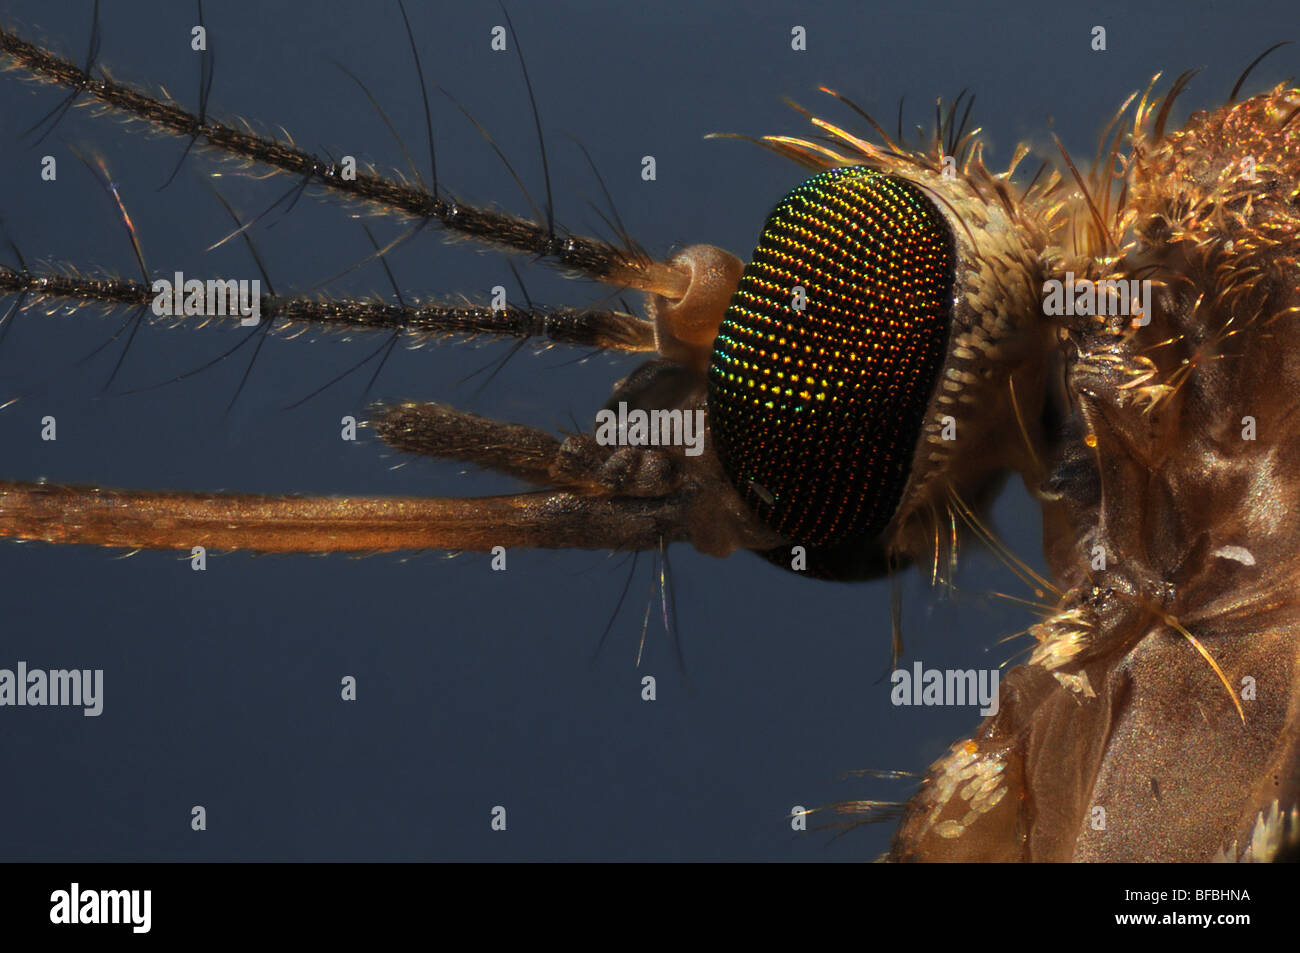 The head of a mosquito, culex pipiens taken through a microscope - Stock Image